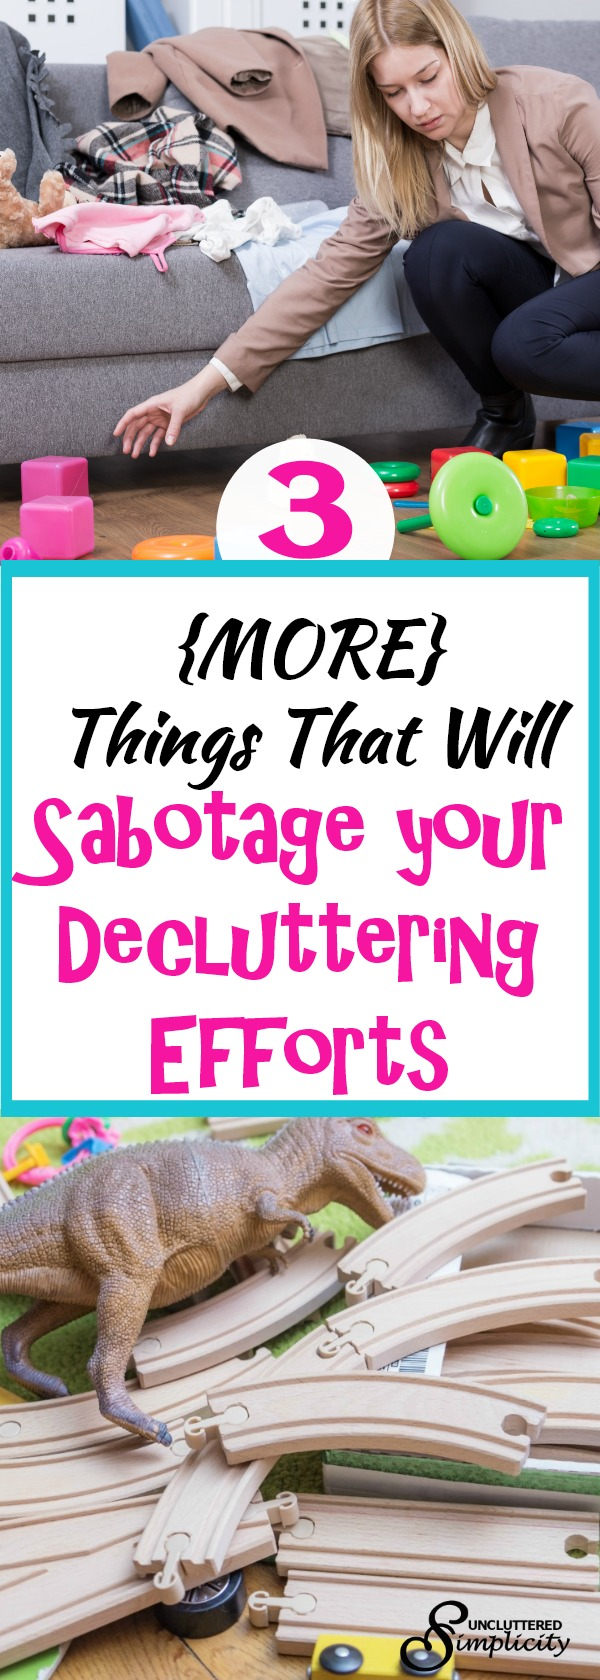 decluttering efforts | things that get in the way of decluttering | how to declutter your home